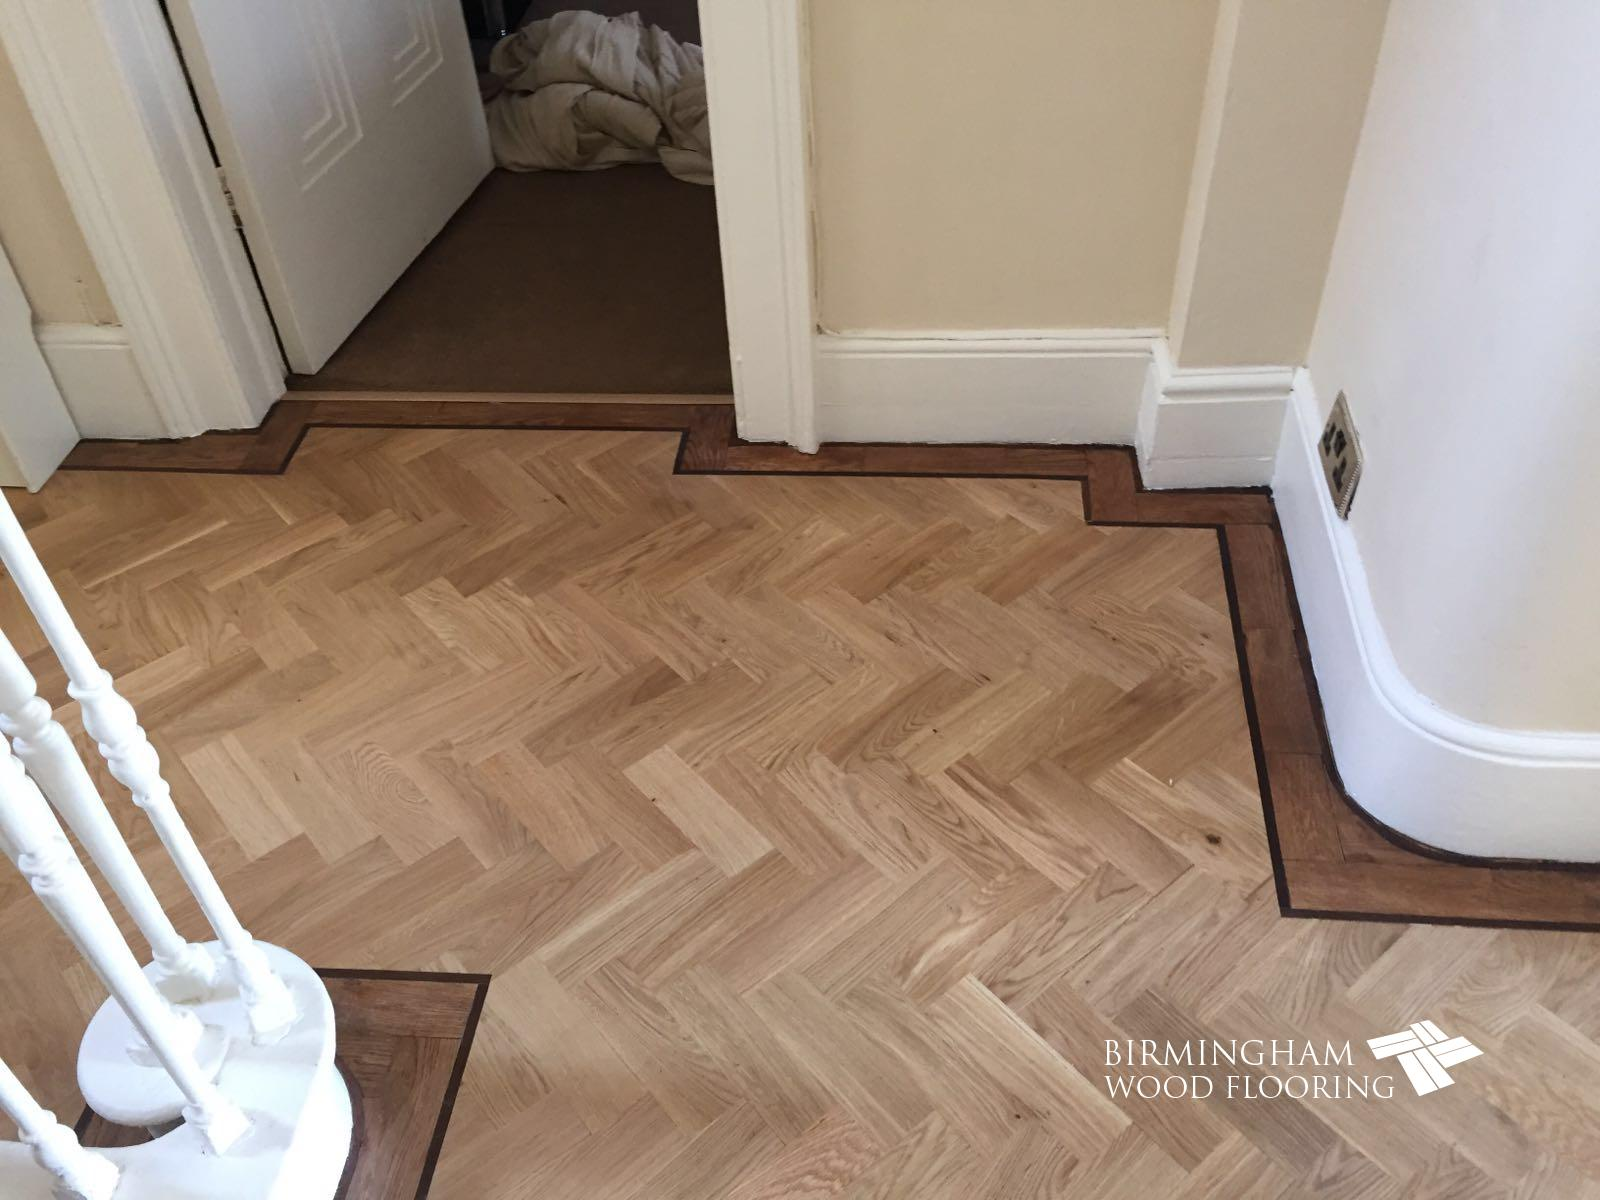 Parquet-floor-with-Wenge-Feature-strip-installed-with-order-stained-medium-oak-4